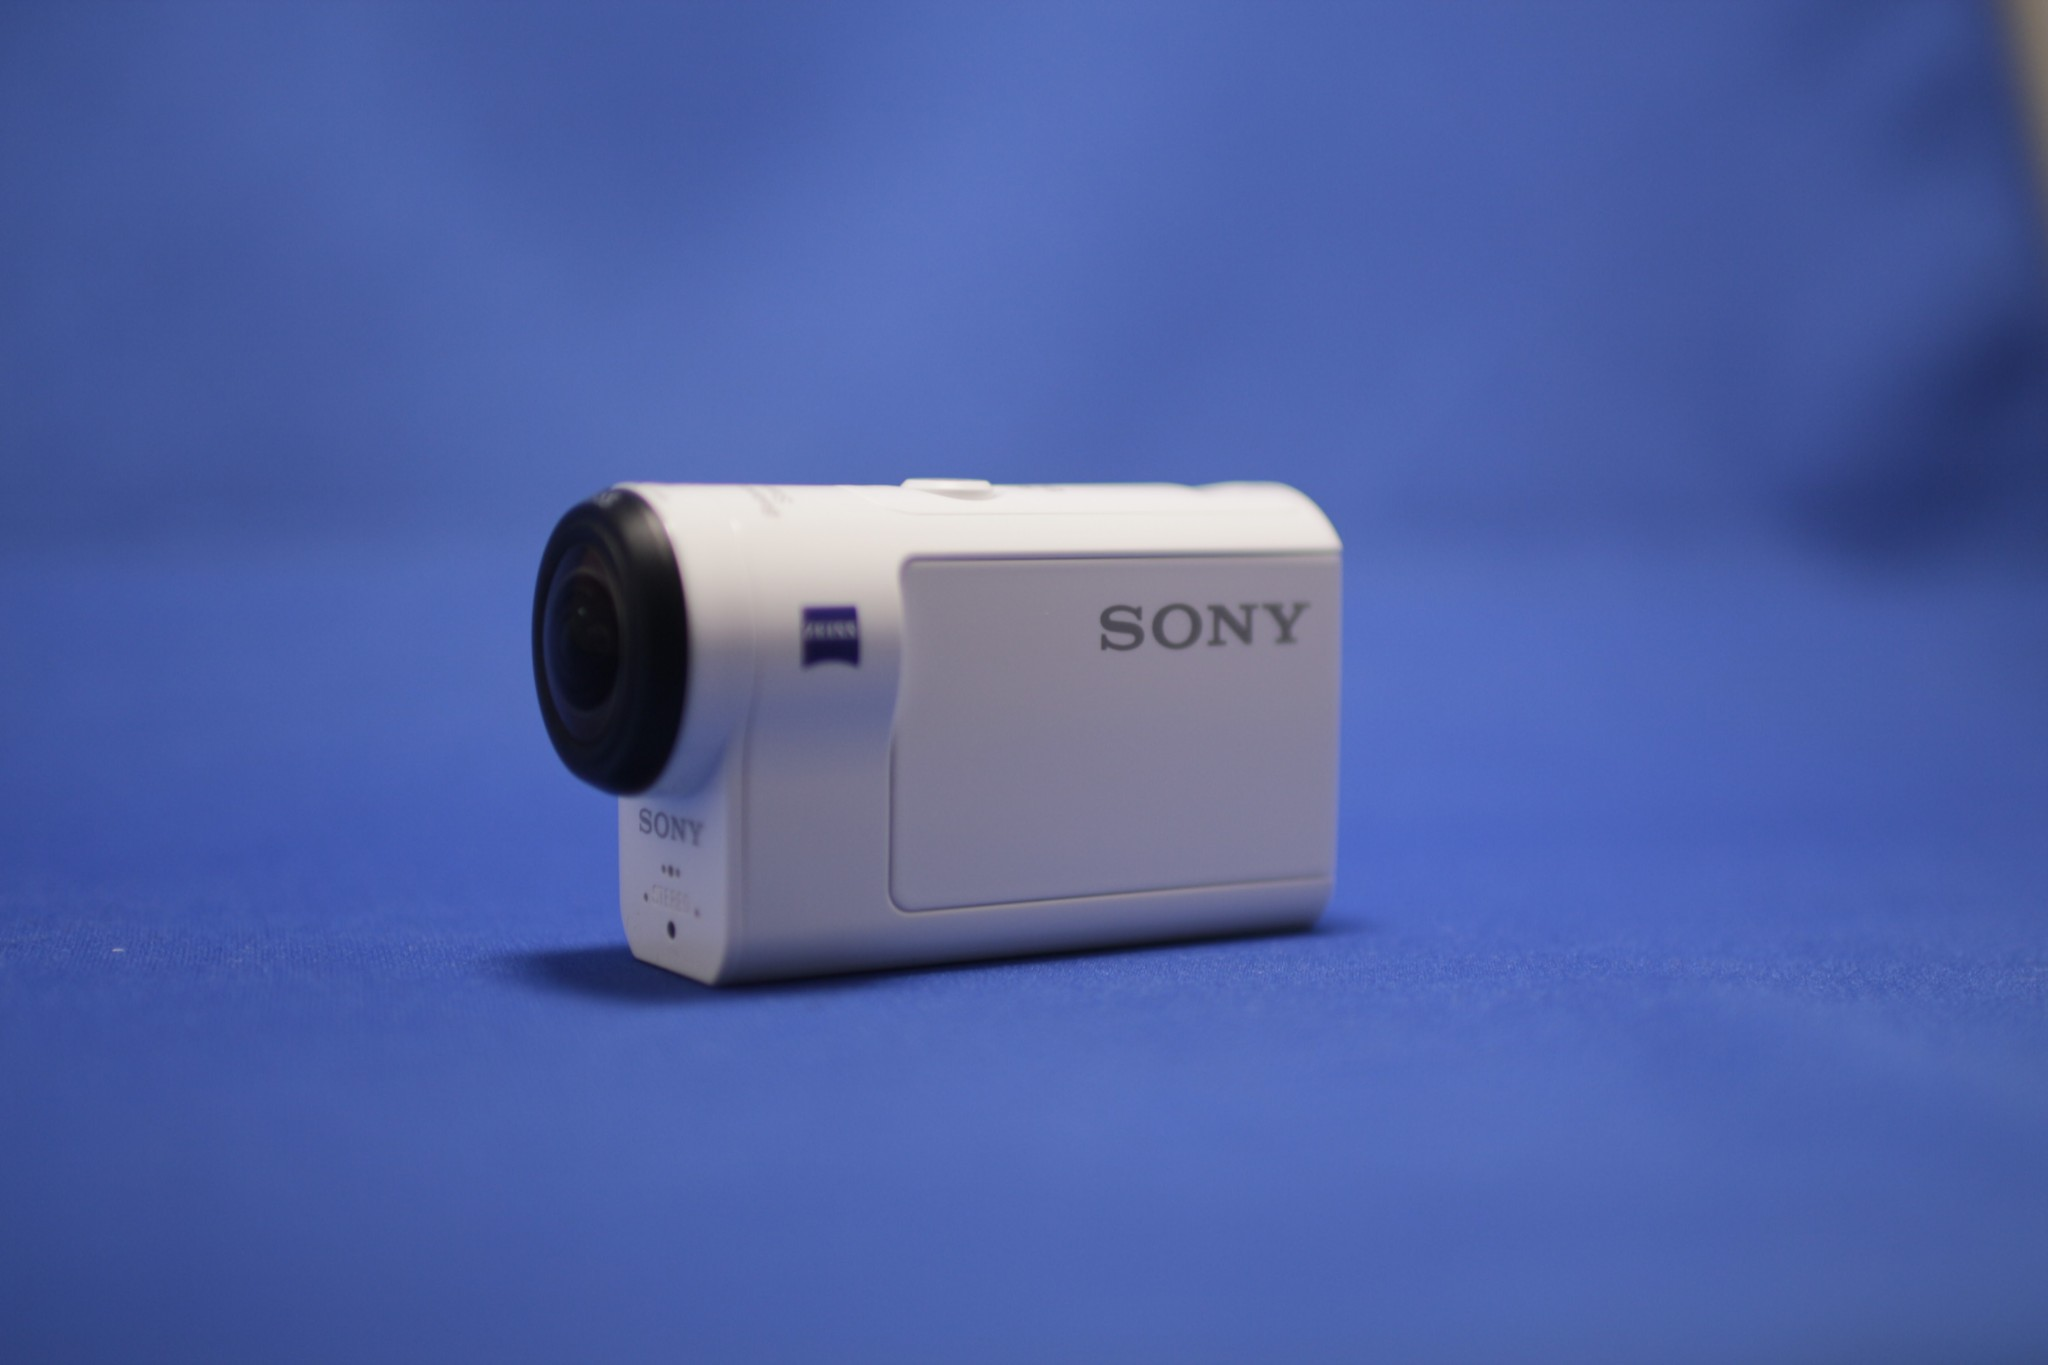 Actioncam SONY HDR-AS300故障してしまいました